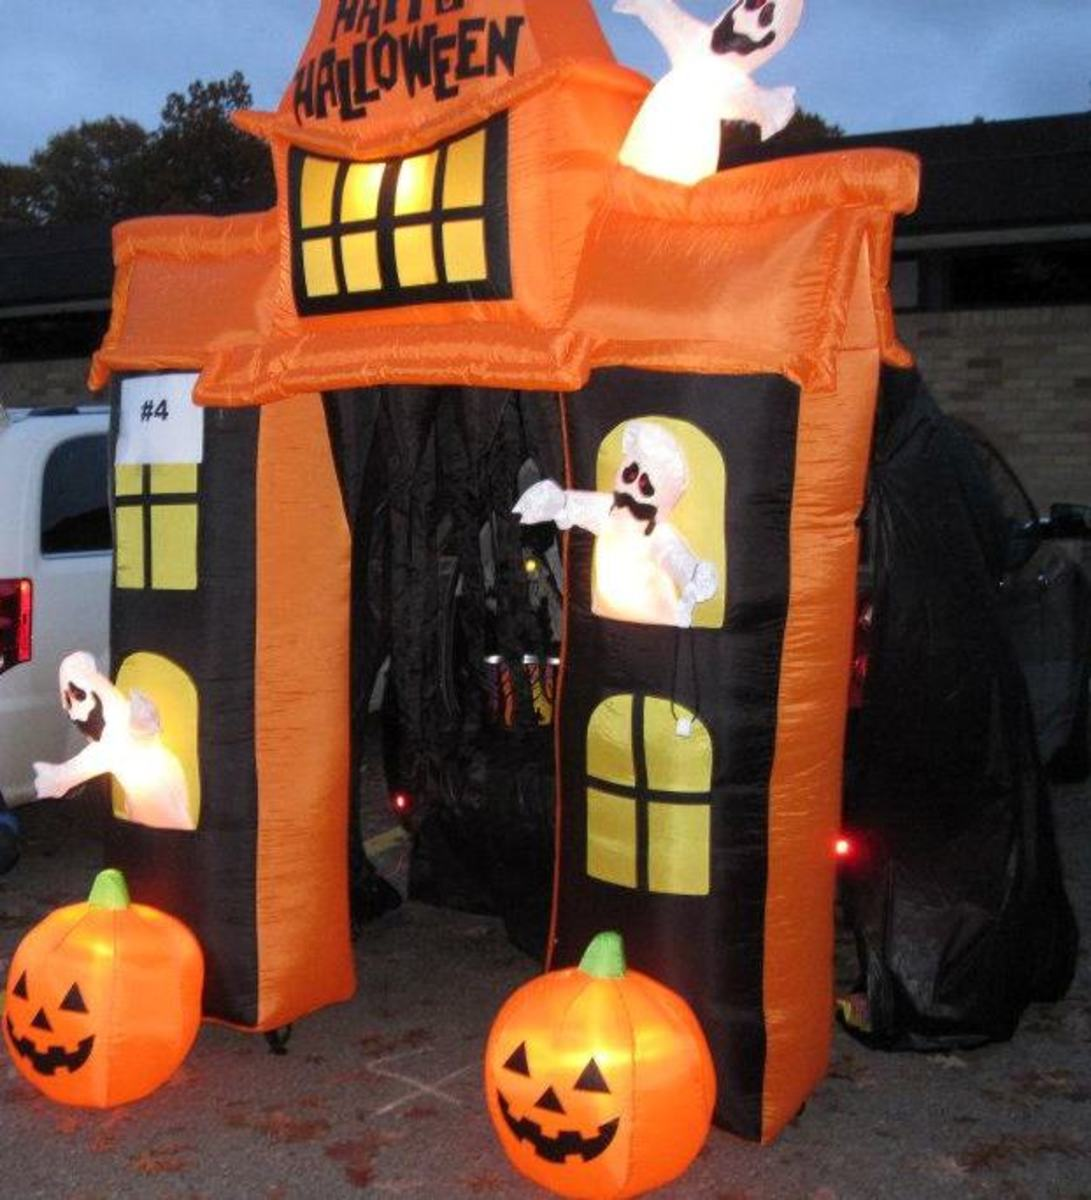 This blow-up haunted mansion archway in front of a trunk was the kids' favorite at this Trunk or Treat!